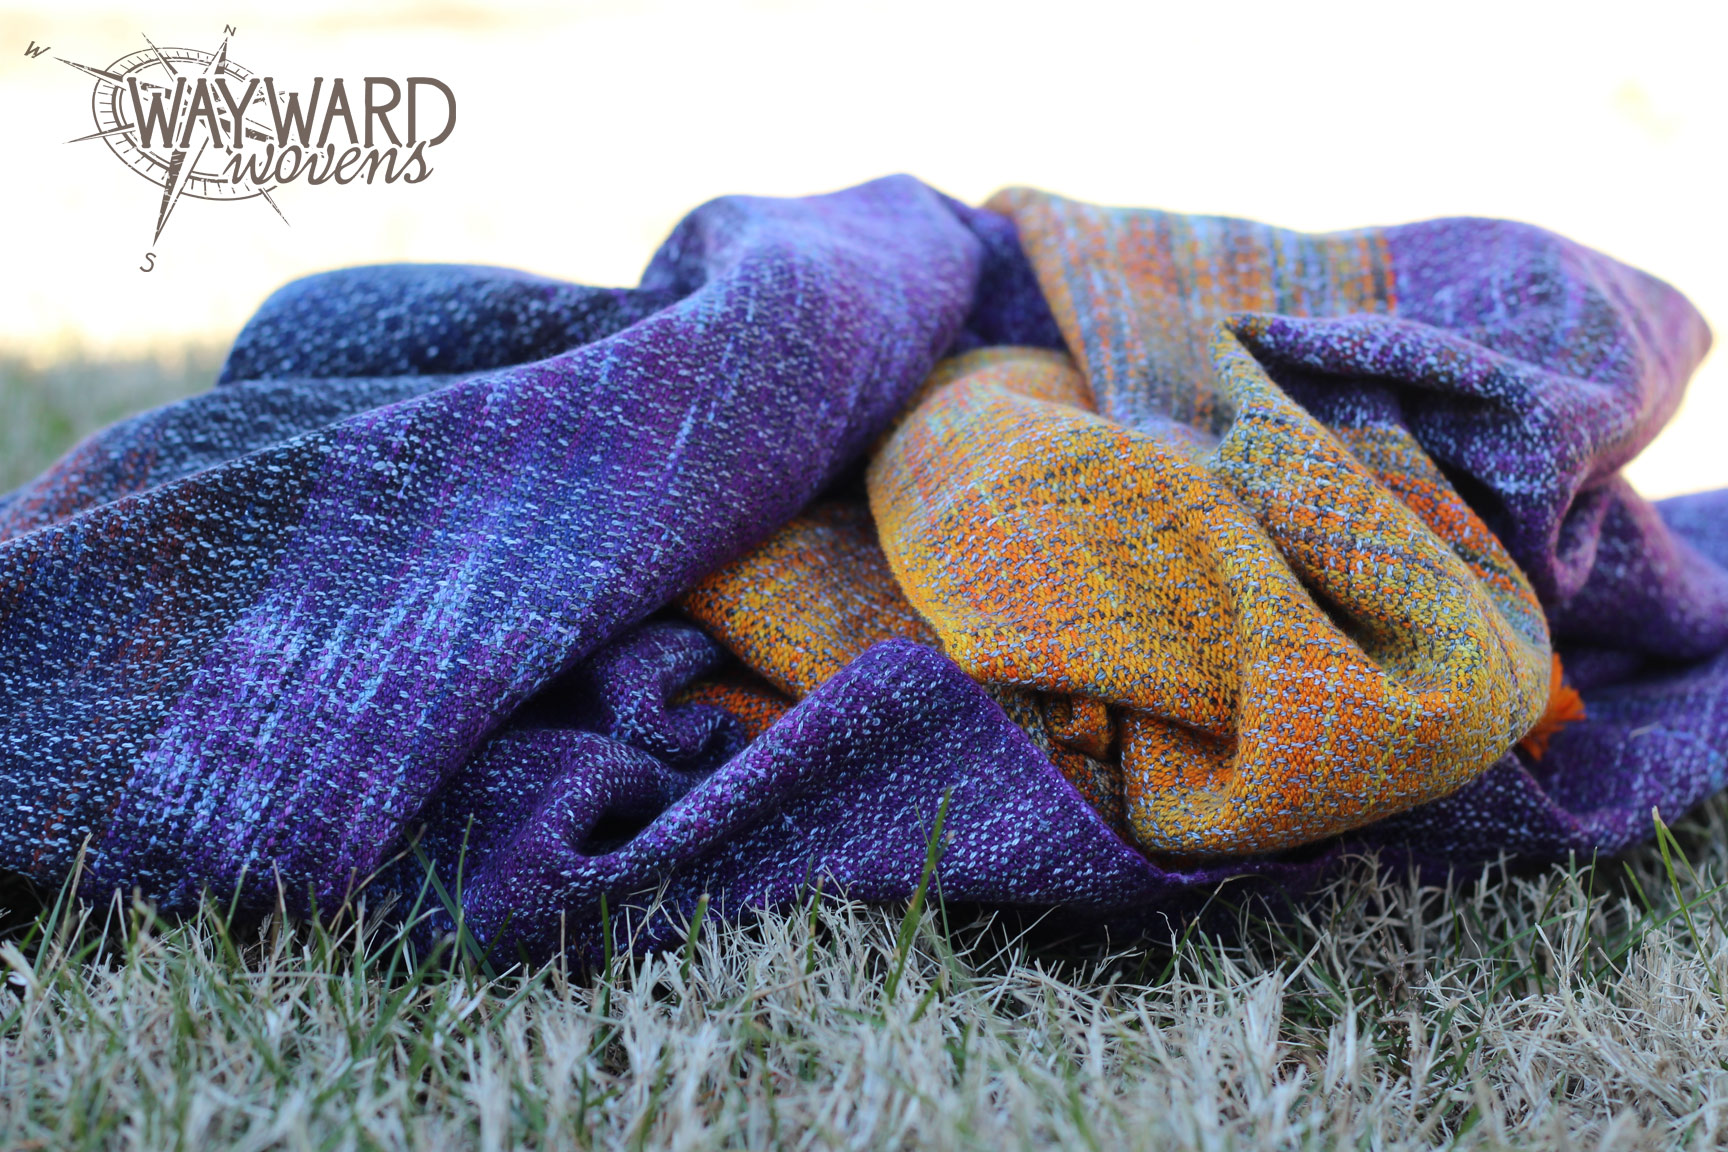 Woven wrap gathered in pile on grass